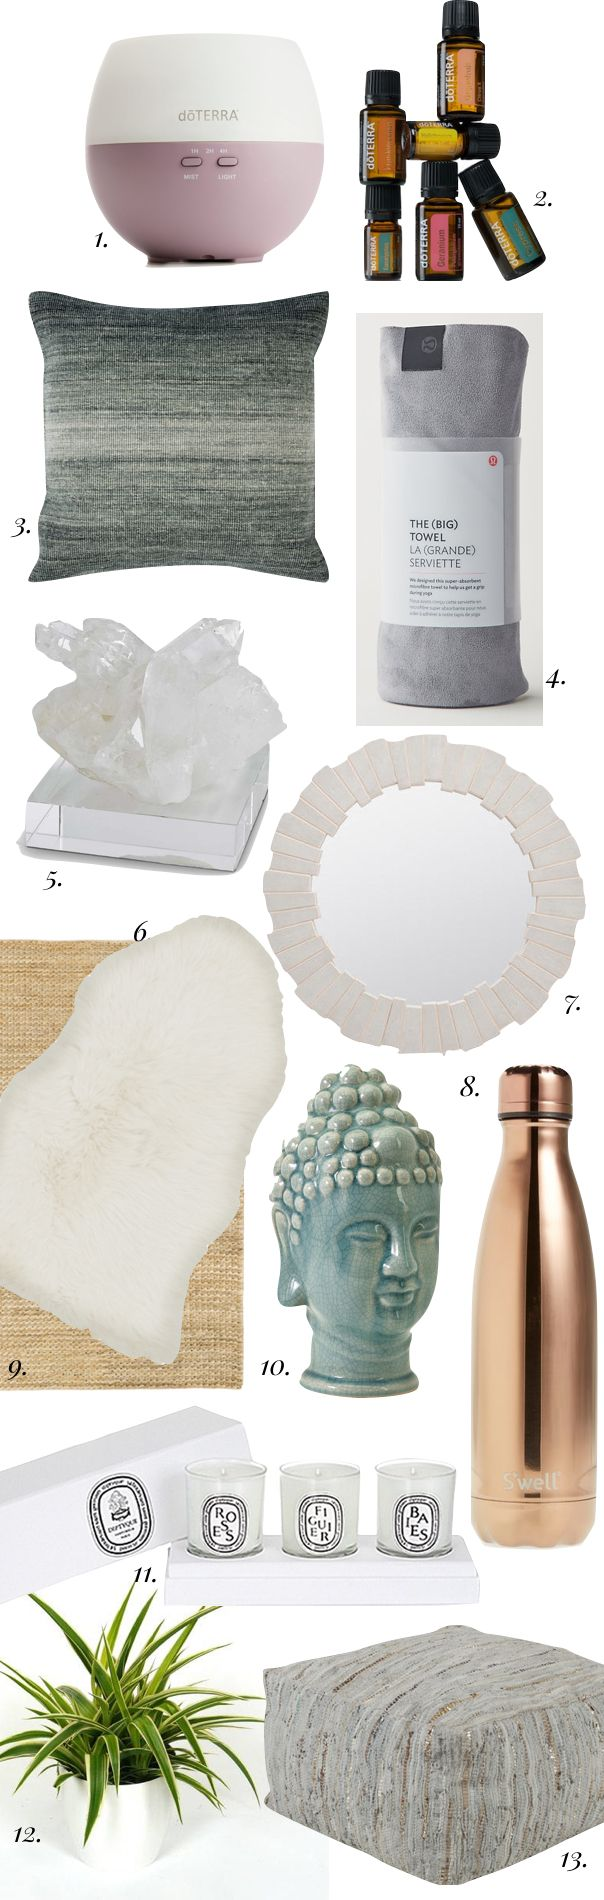 13 Essentials for your Wellness and Meditation Room                                                                                                                                                     More